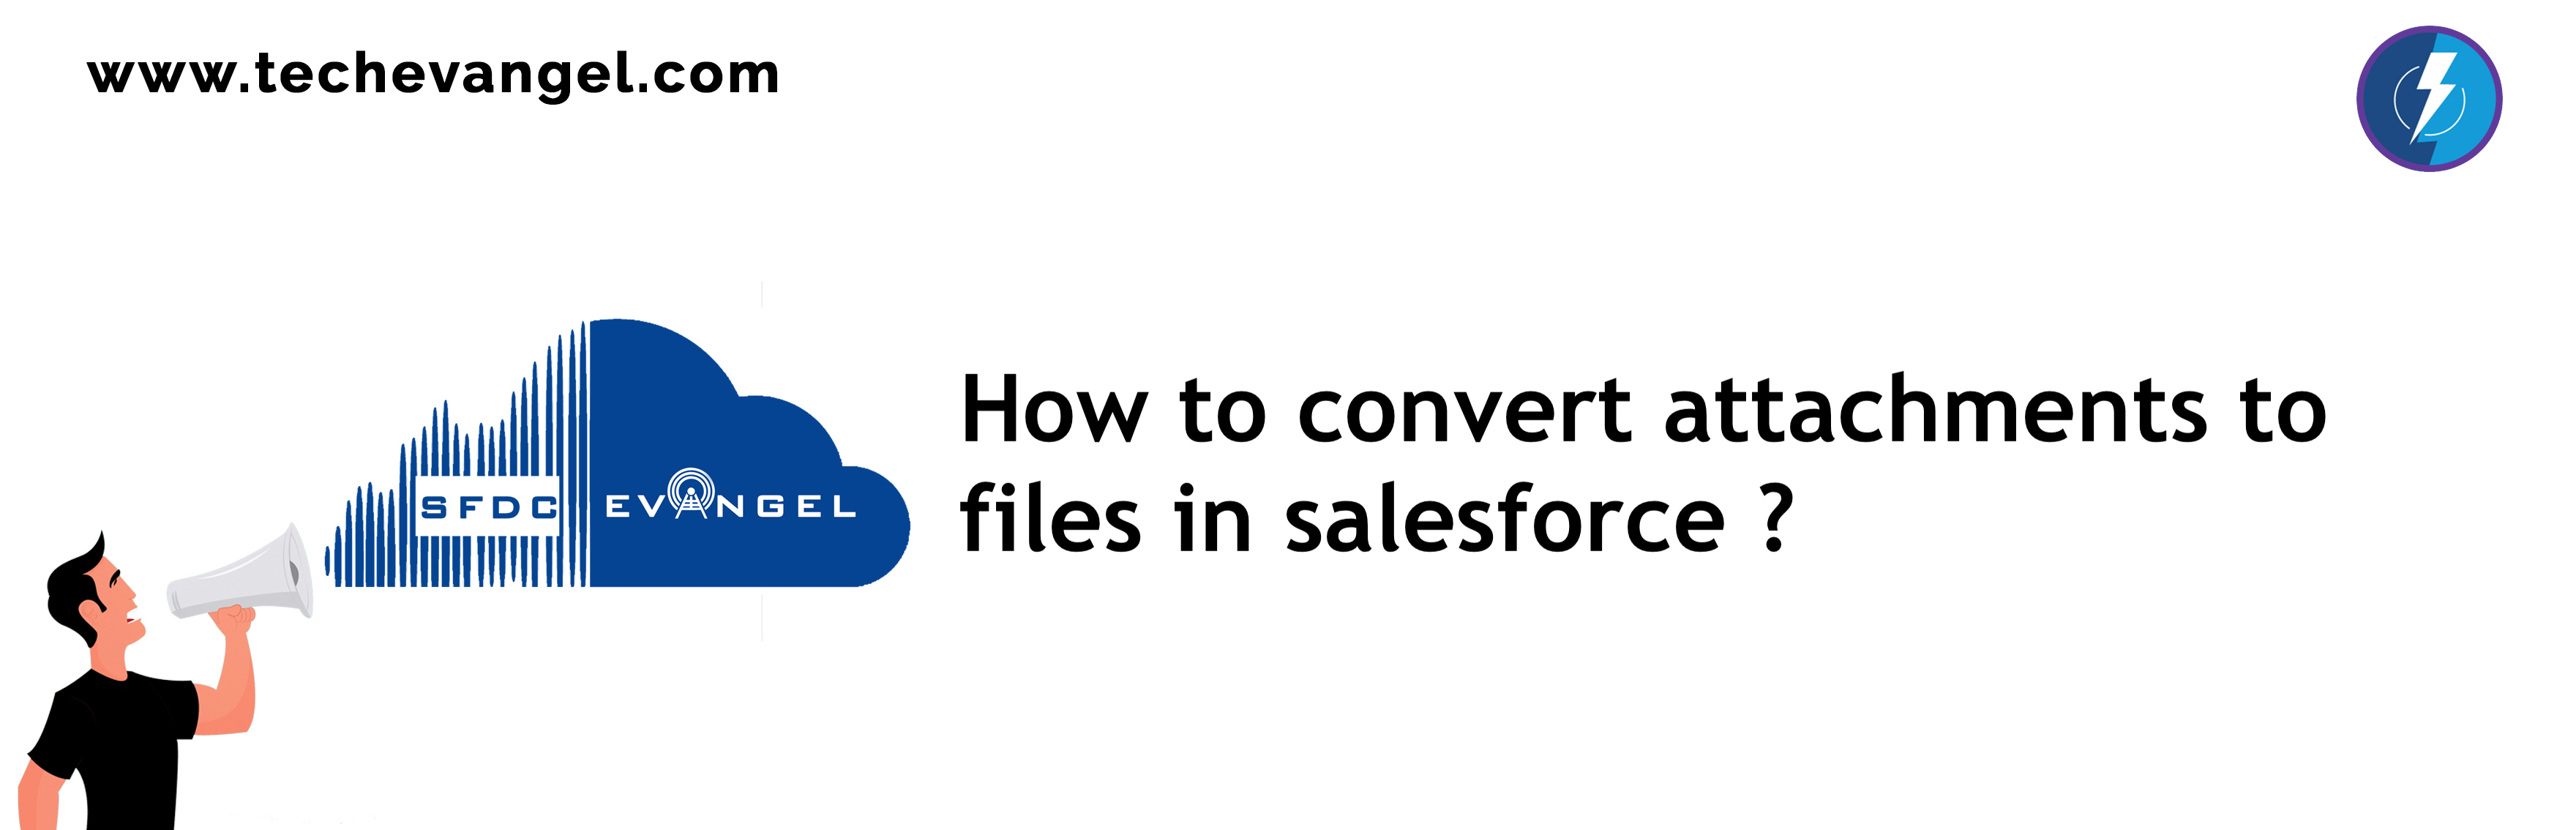 How to convert attachments to files in salesforce ? – Tech Evangel